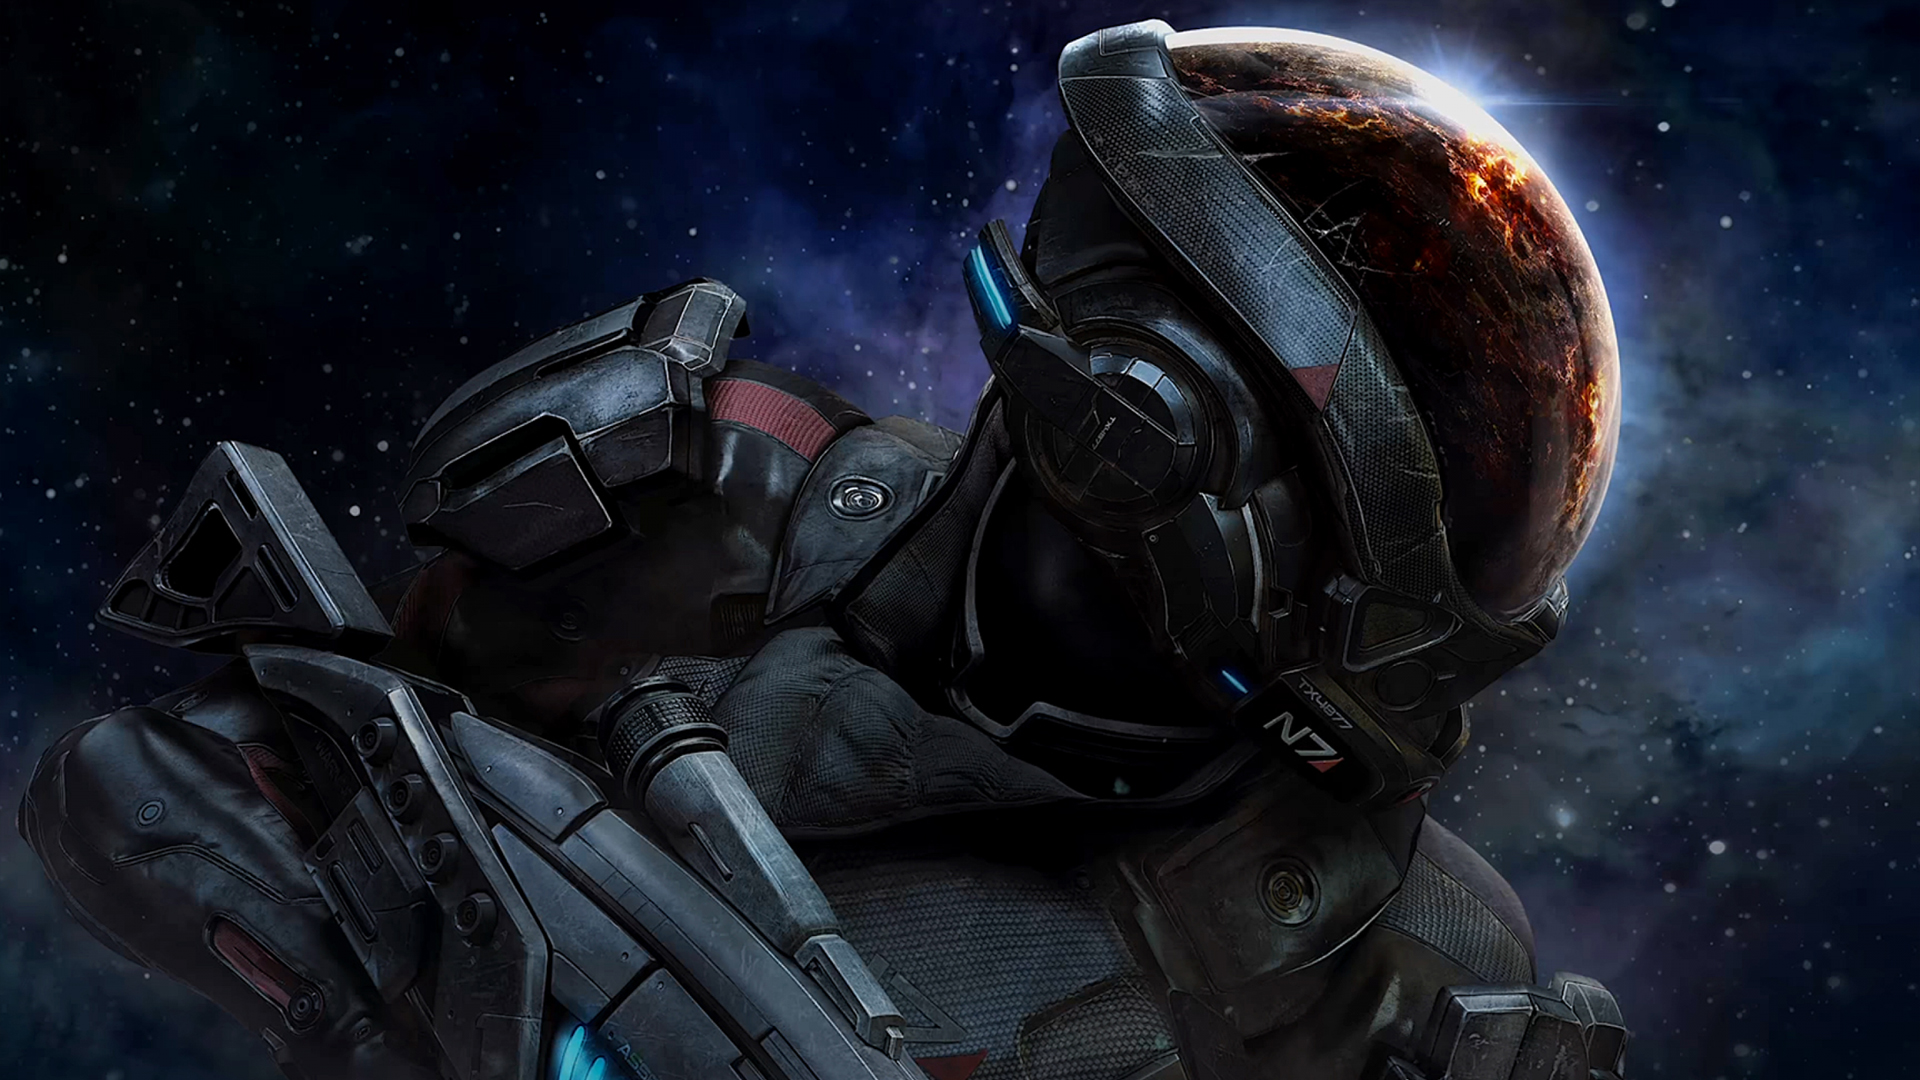 Pathfinder Armor Wallpaper From Mass Effect Andromeda